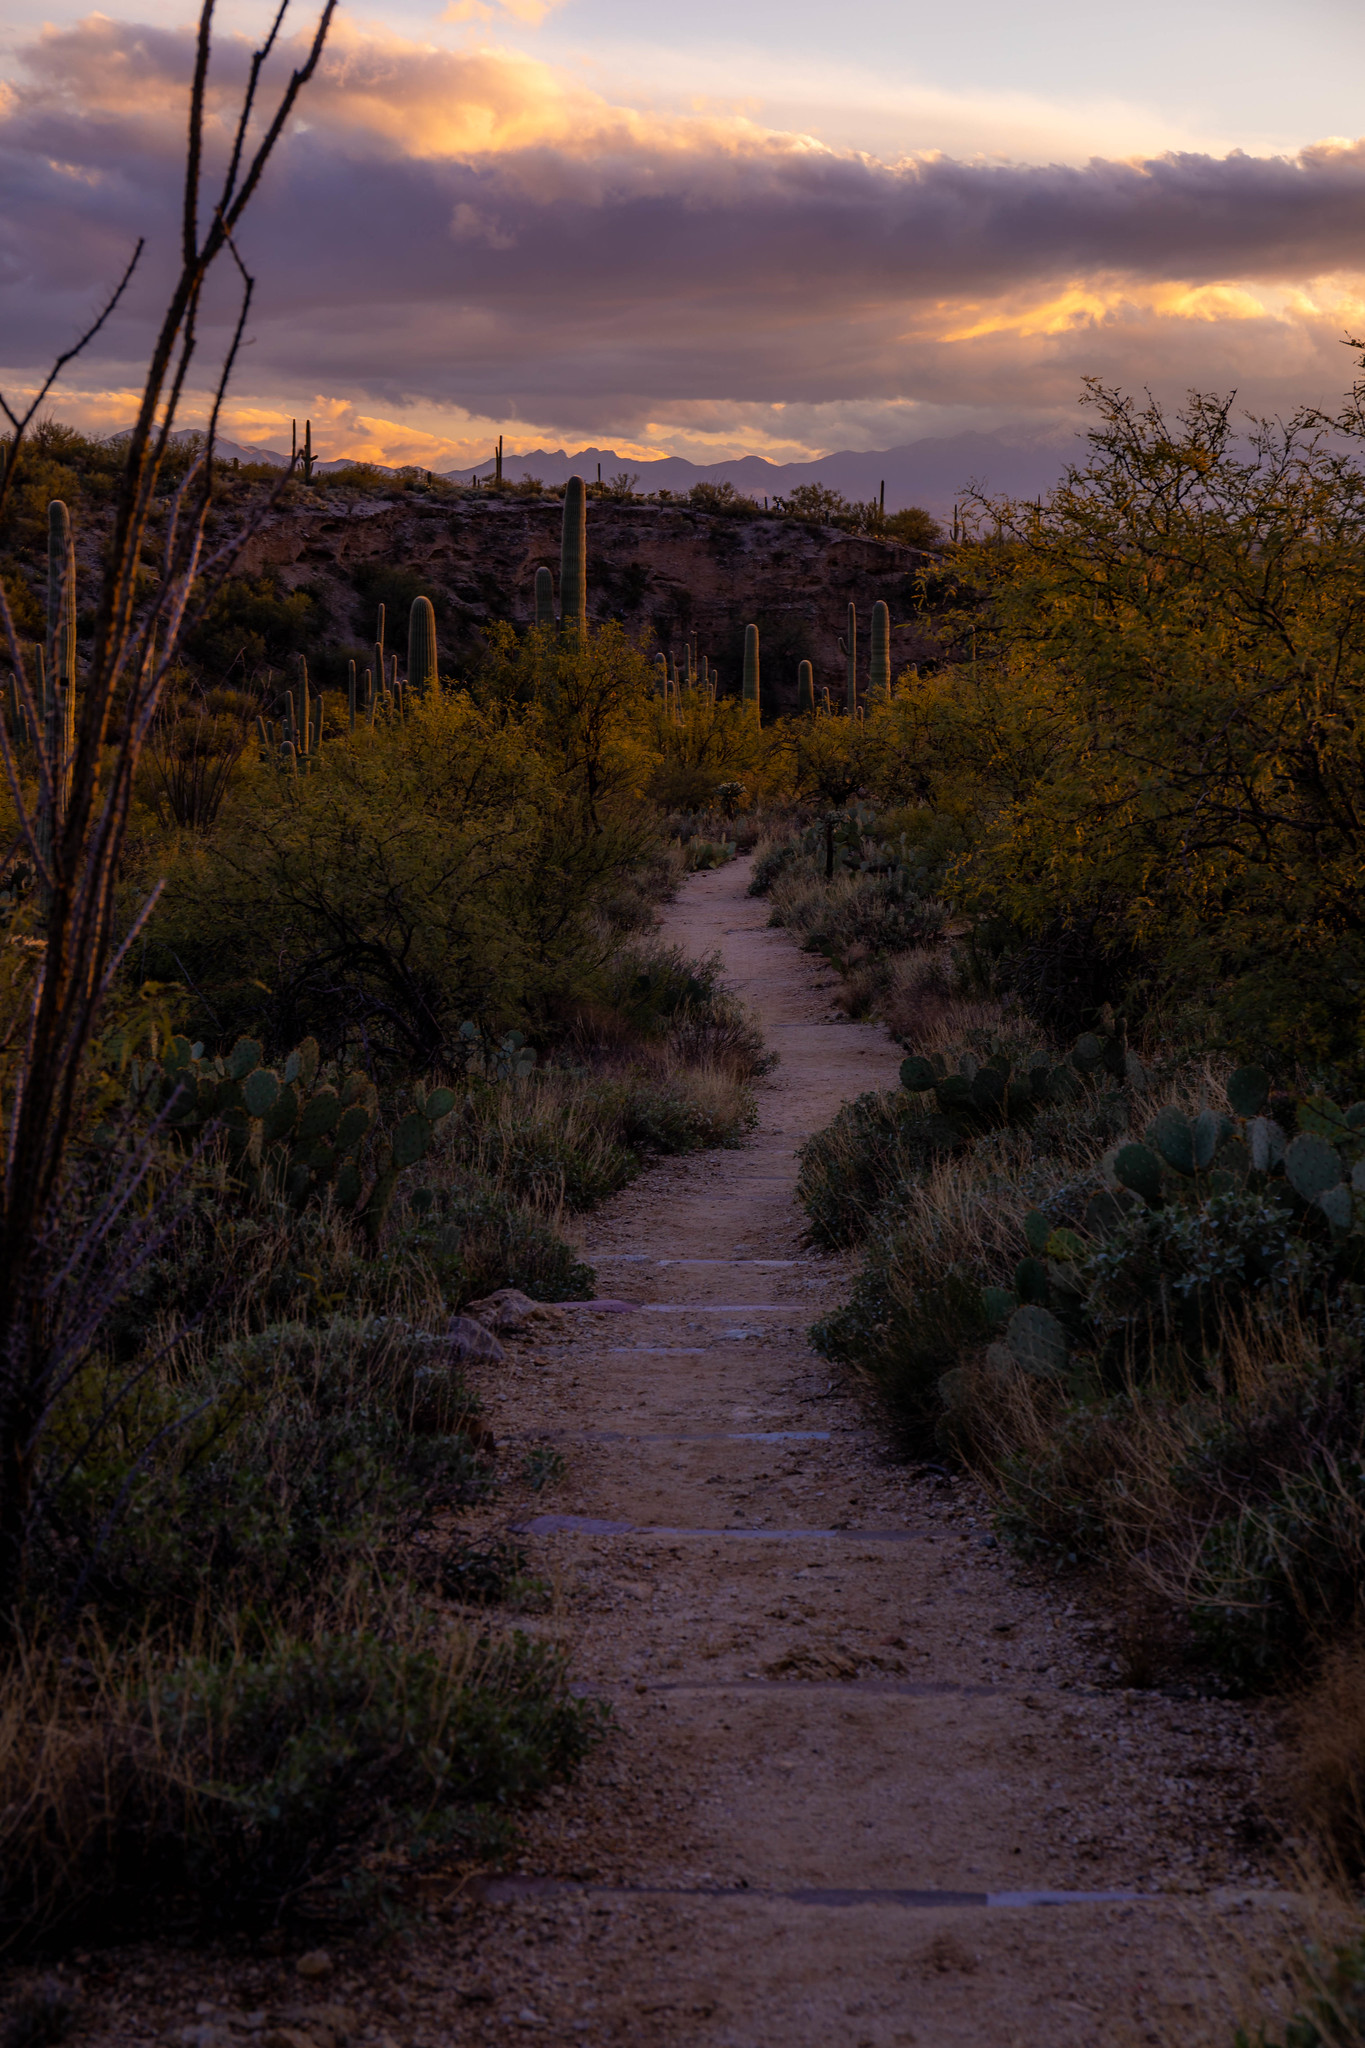 12.25. Saguaro National Park